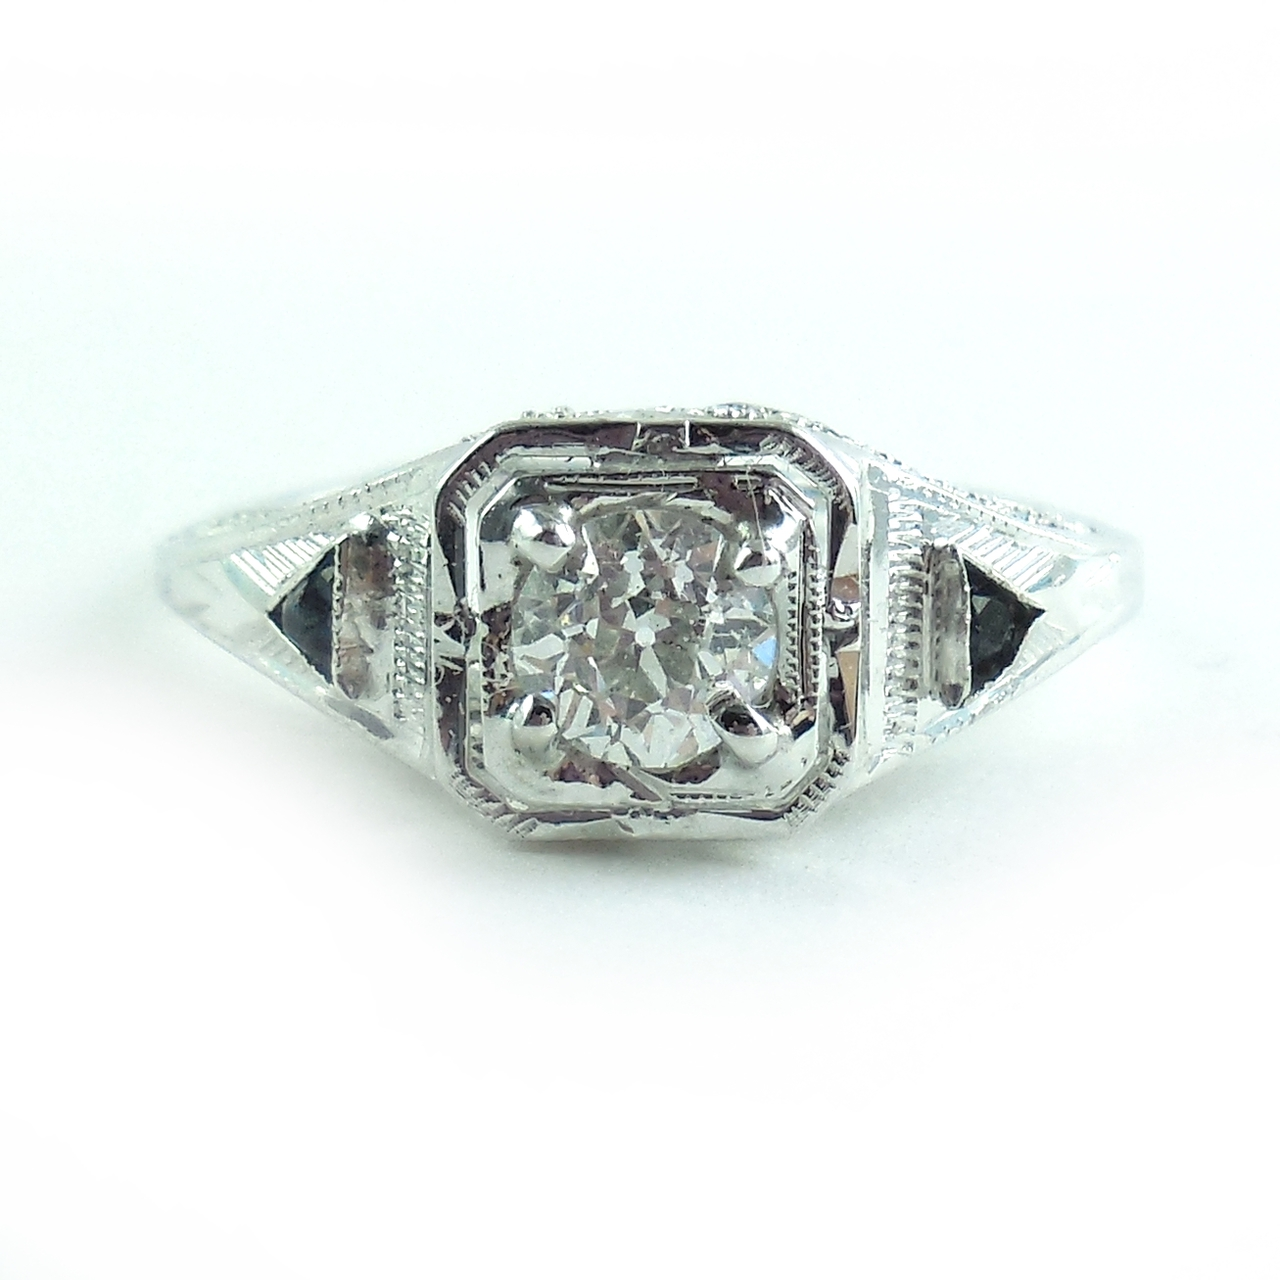 Antique Art Deco 14k White Gold Mine Cut Diamond Sapphire Fancy Filigree Ring Size 7.5